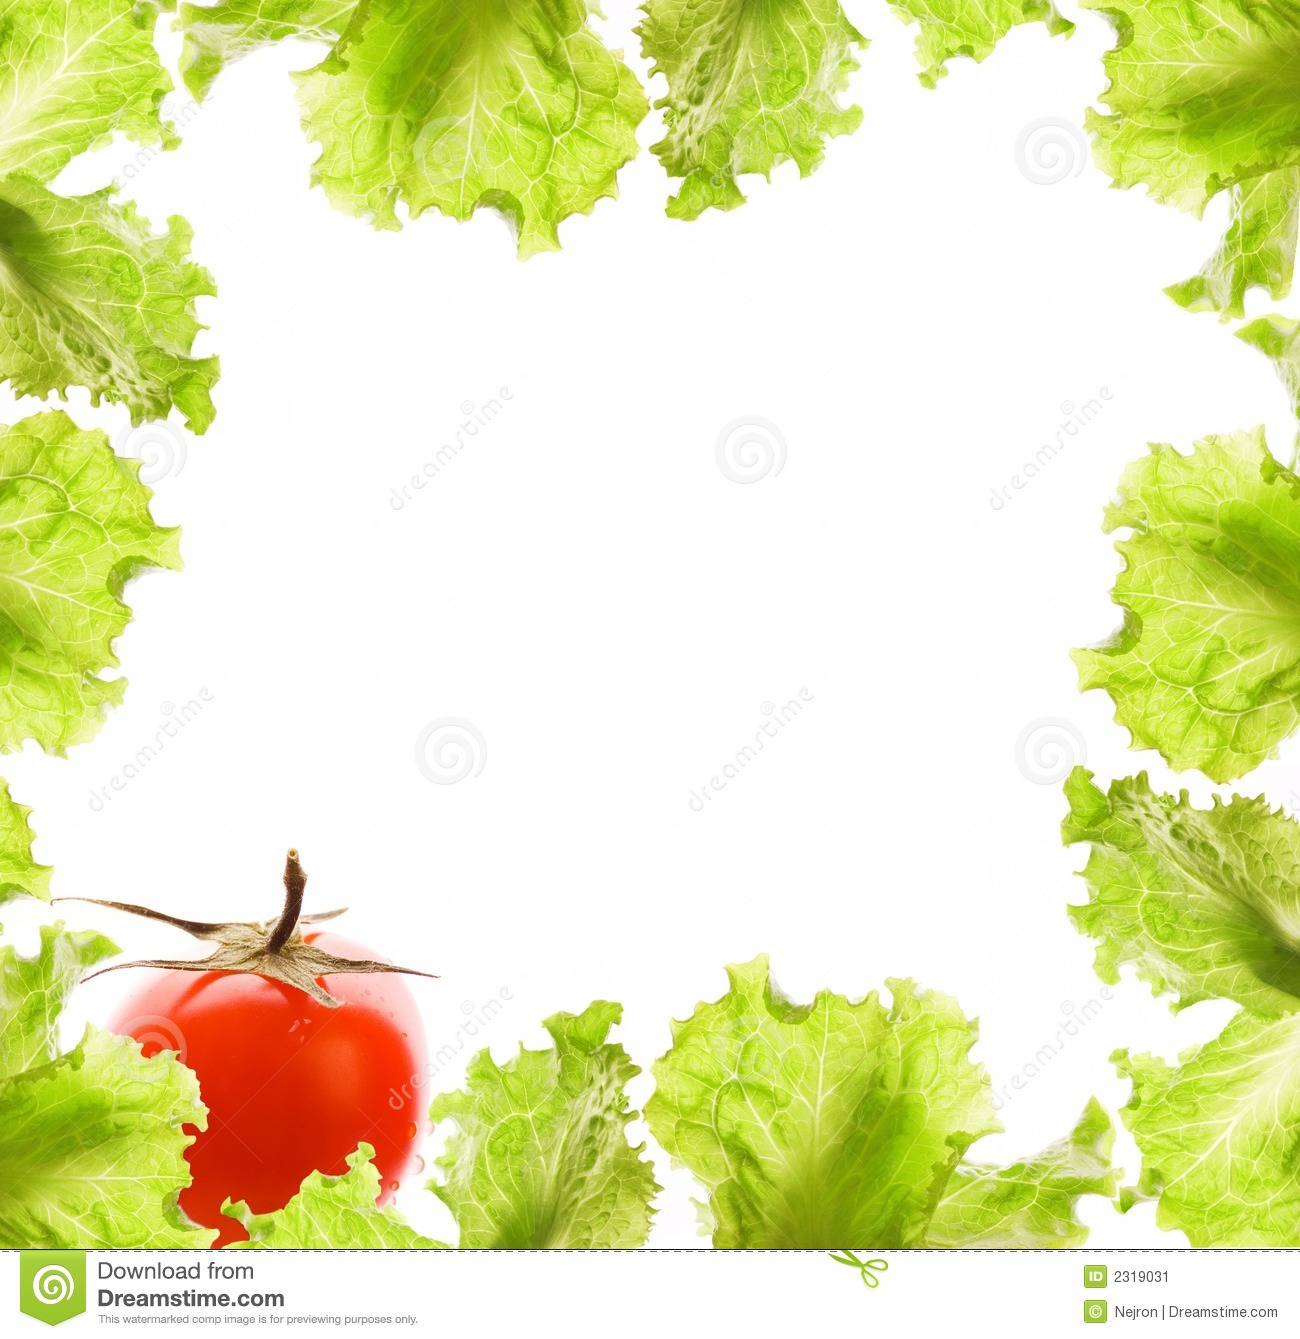 Salads Border Clipart - Clipart Kid